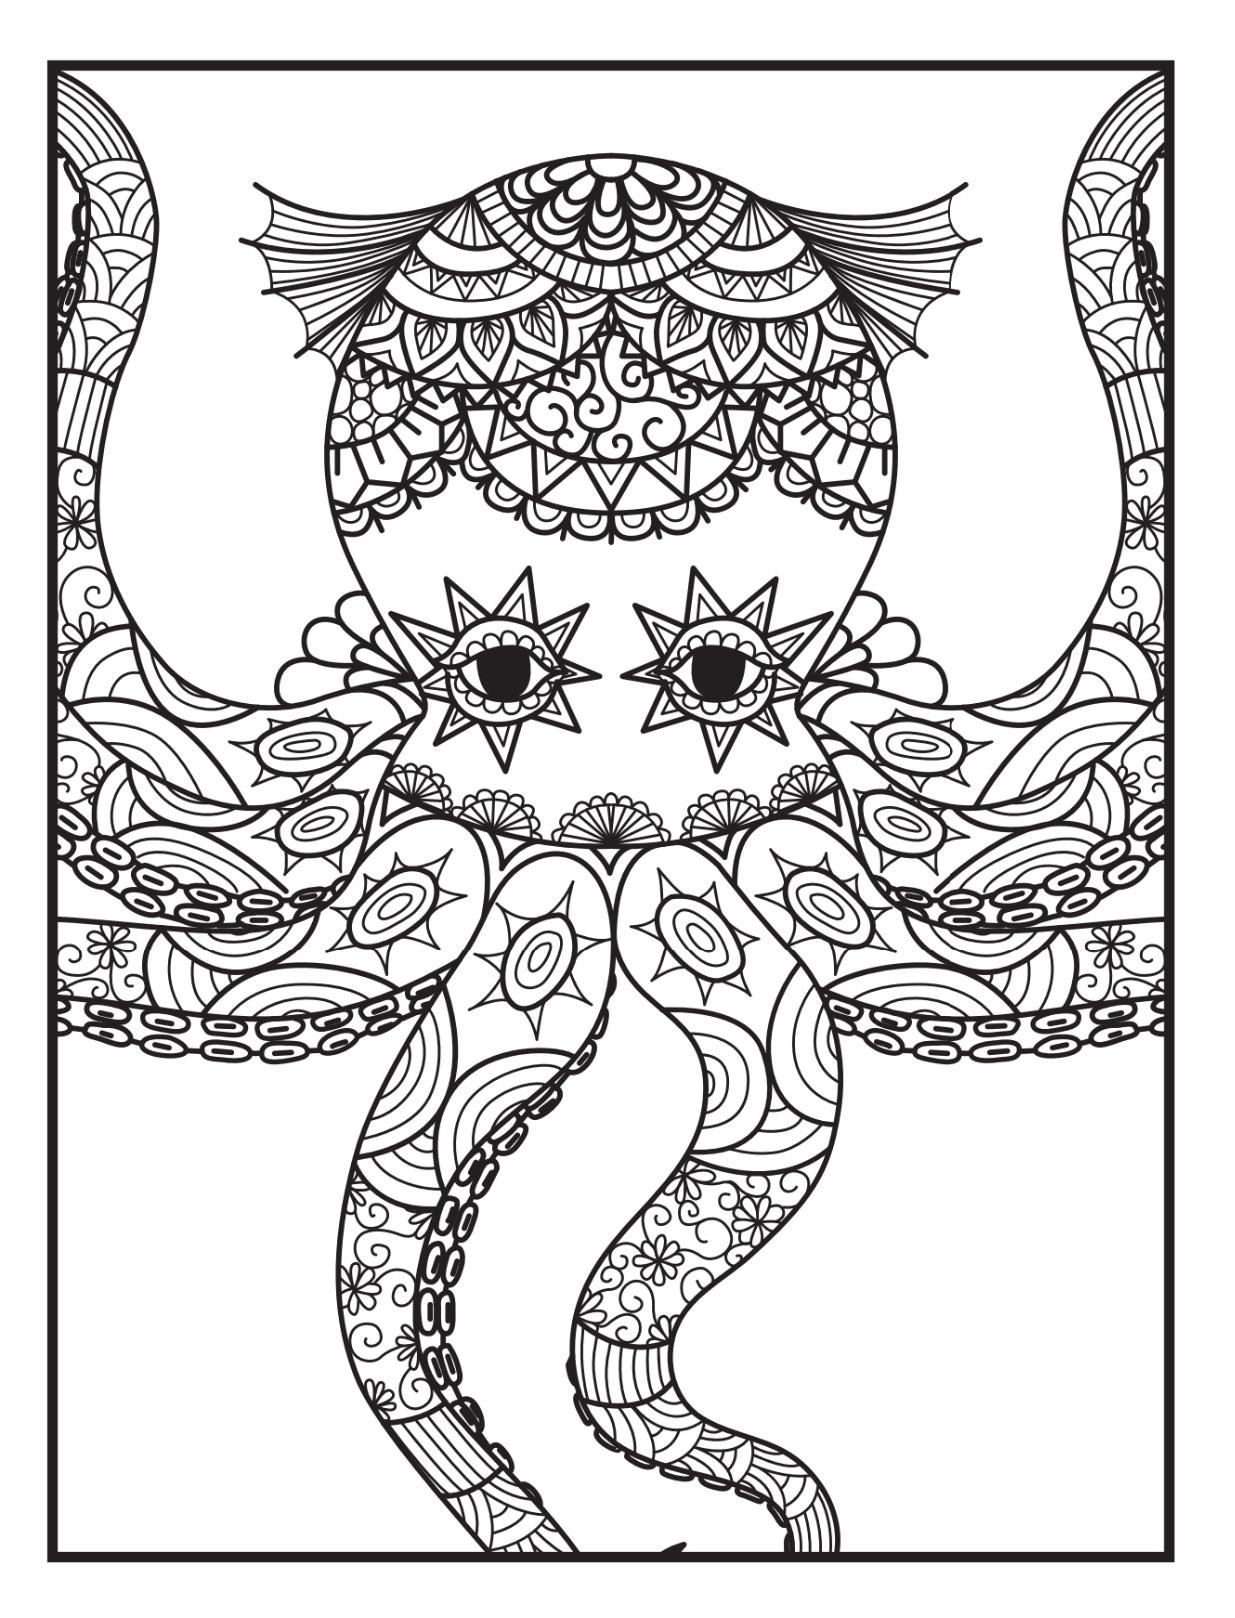 Amazon Adult Coloring Books Animal Mandala Designs And Stress Relieving Patterns For